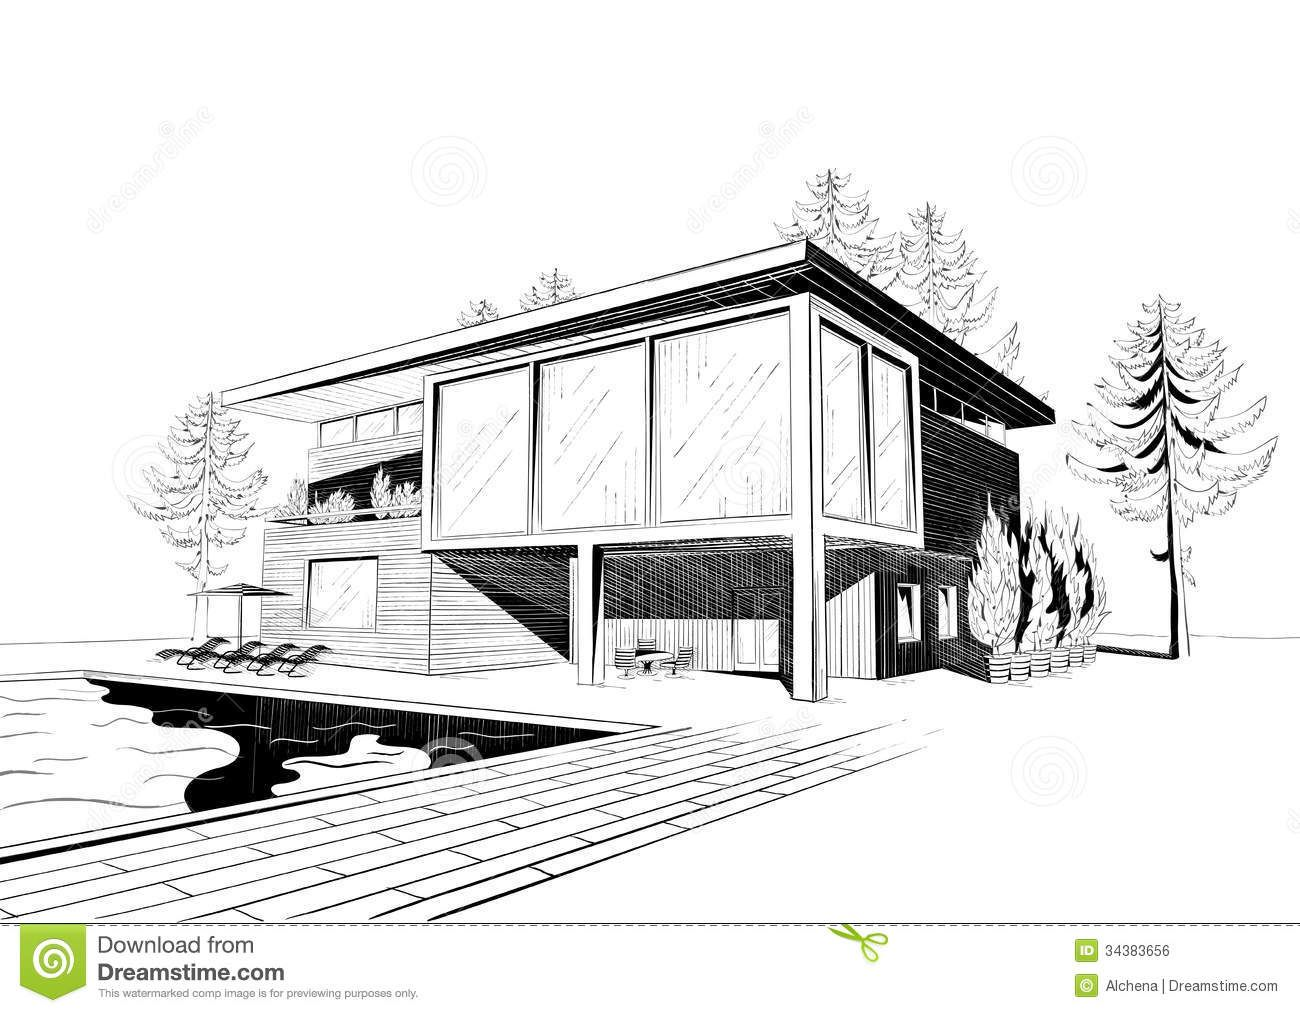 Excellent modern home architecture sketches on home design with vector black and white sketch of House plan sketch design